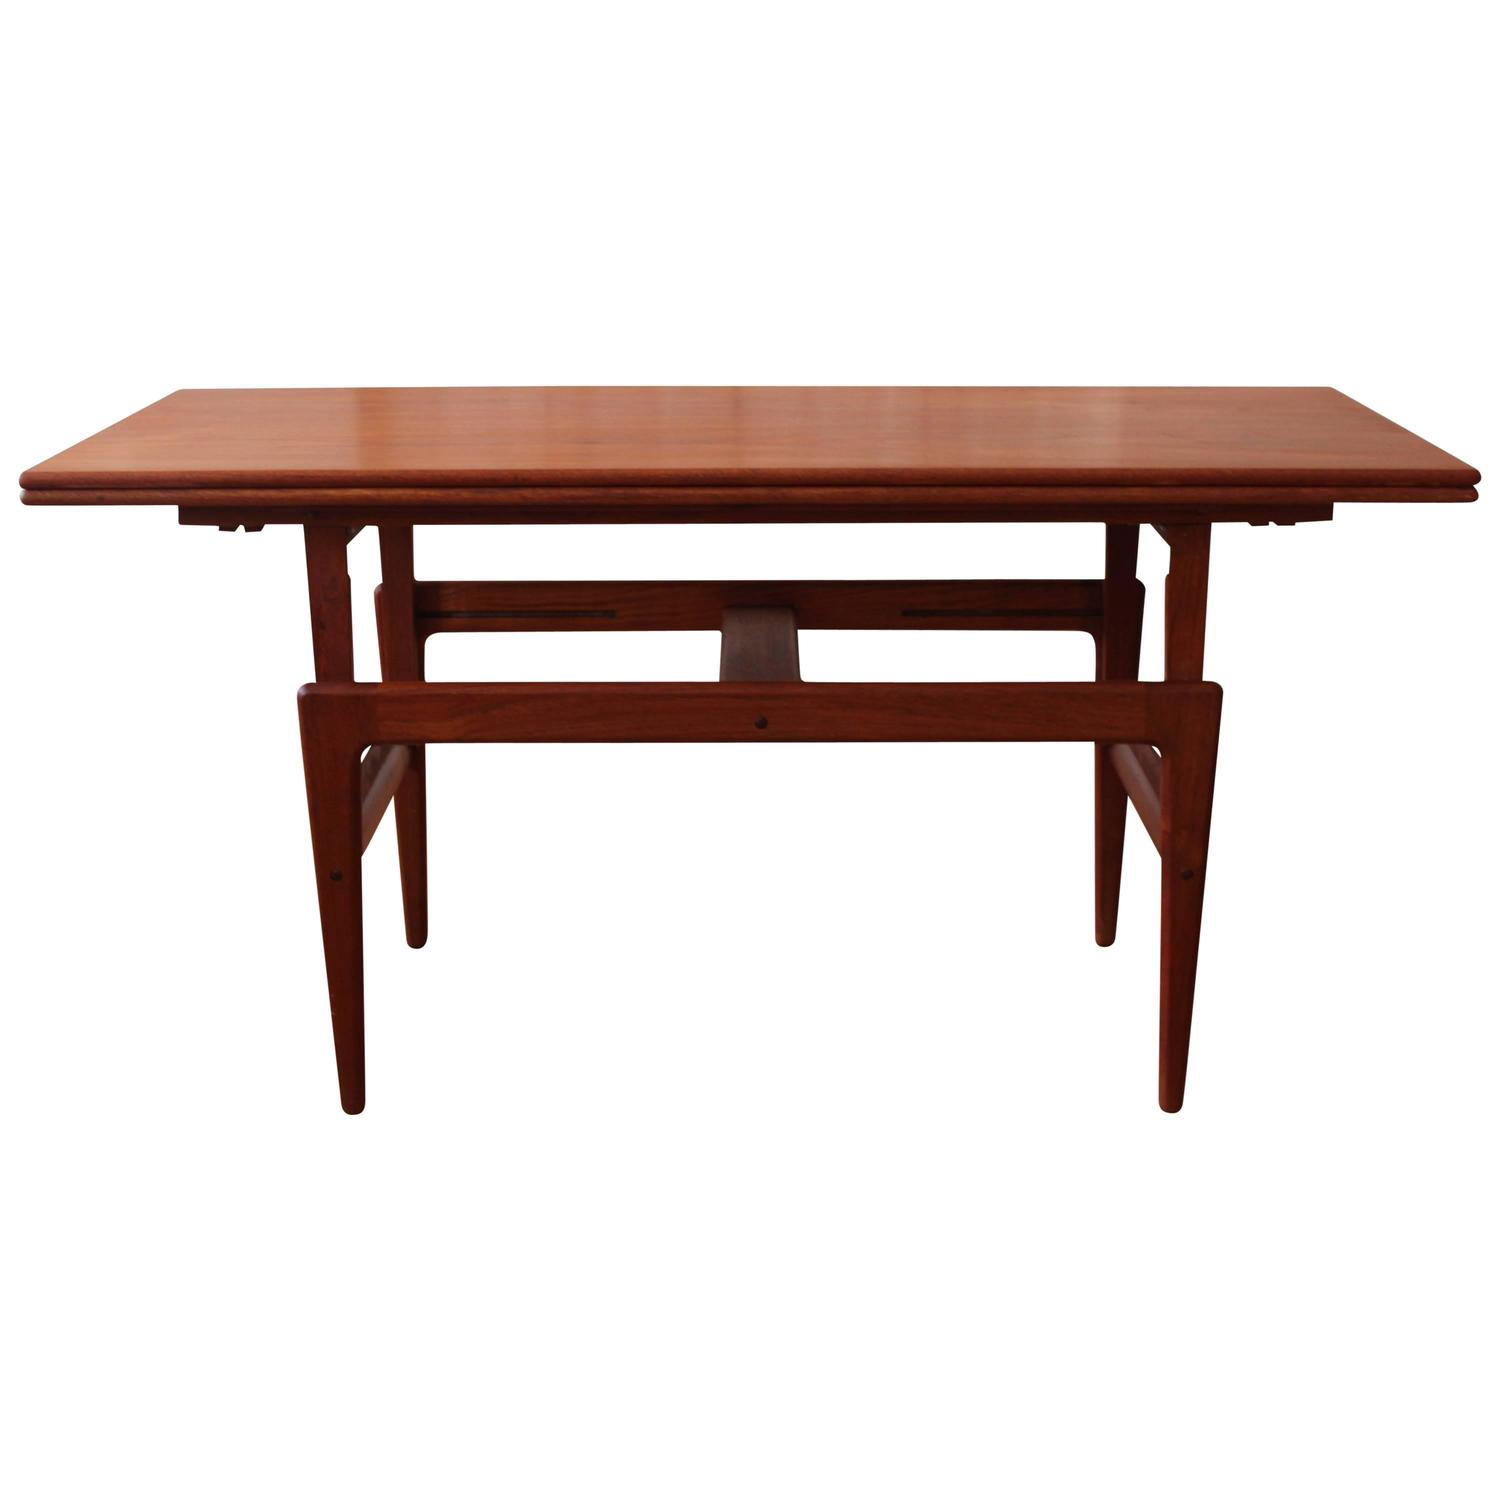 Kai Kristiansen Teak Elevator Table at 1stdibs